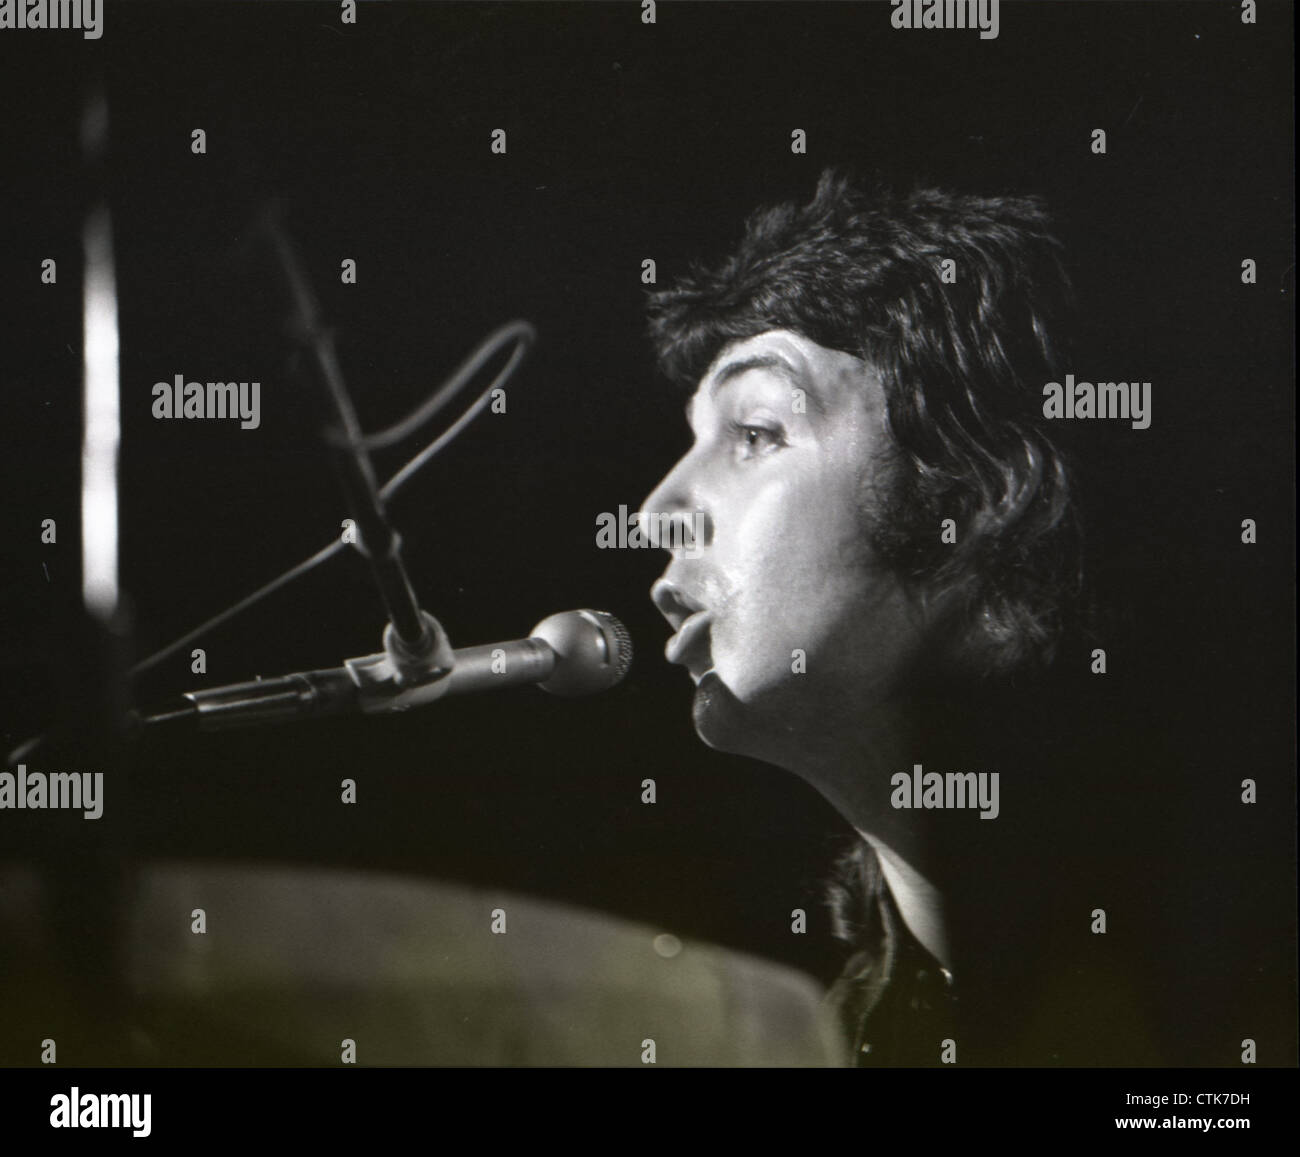 003809 - Paul McCartney in concert with Wings during their 1973 UK Tour - Stock Image